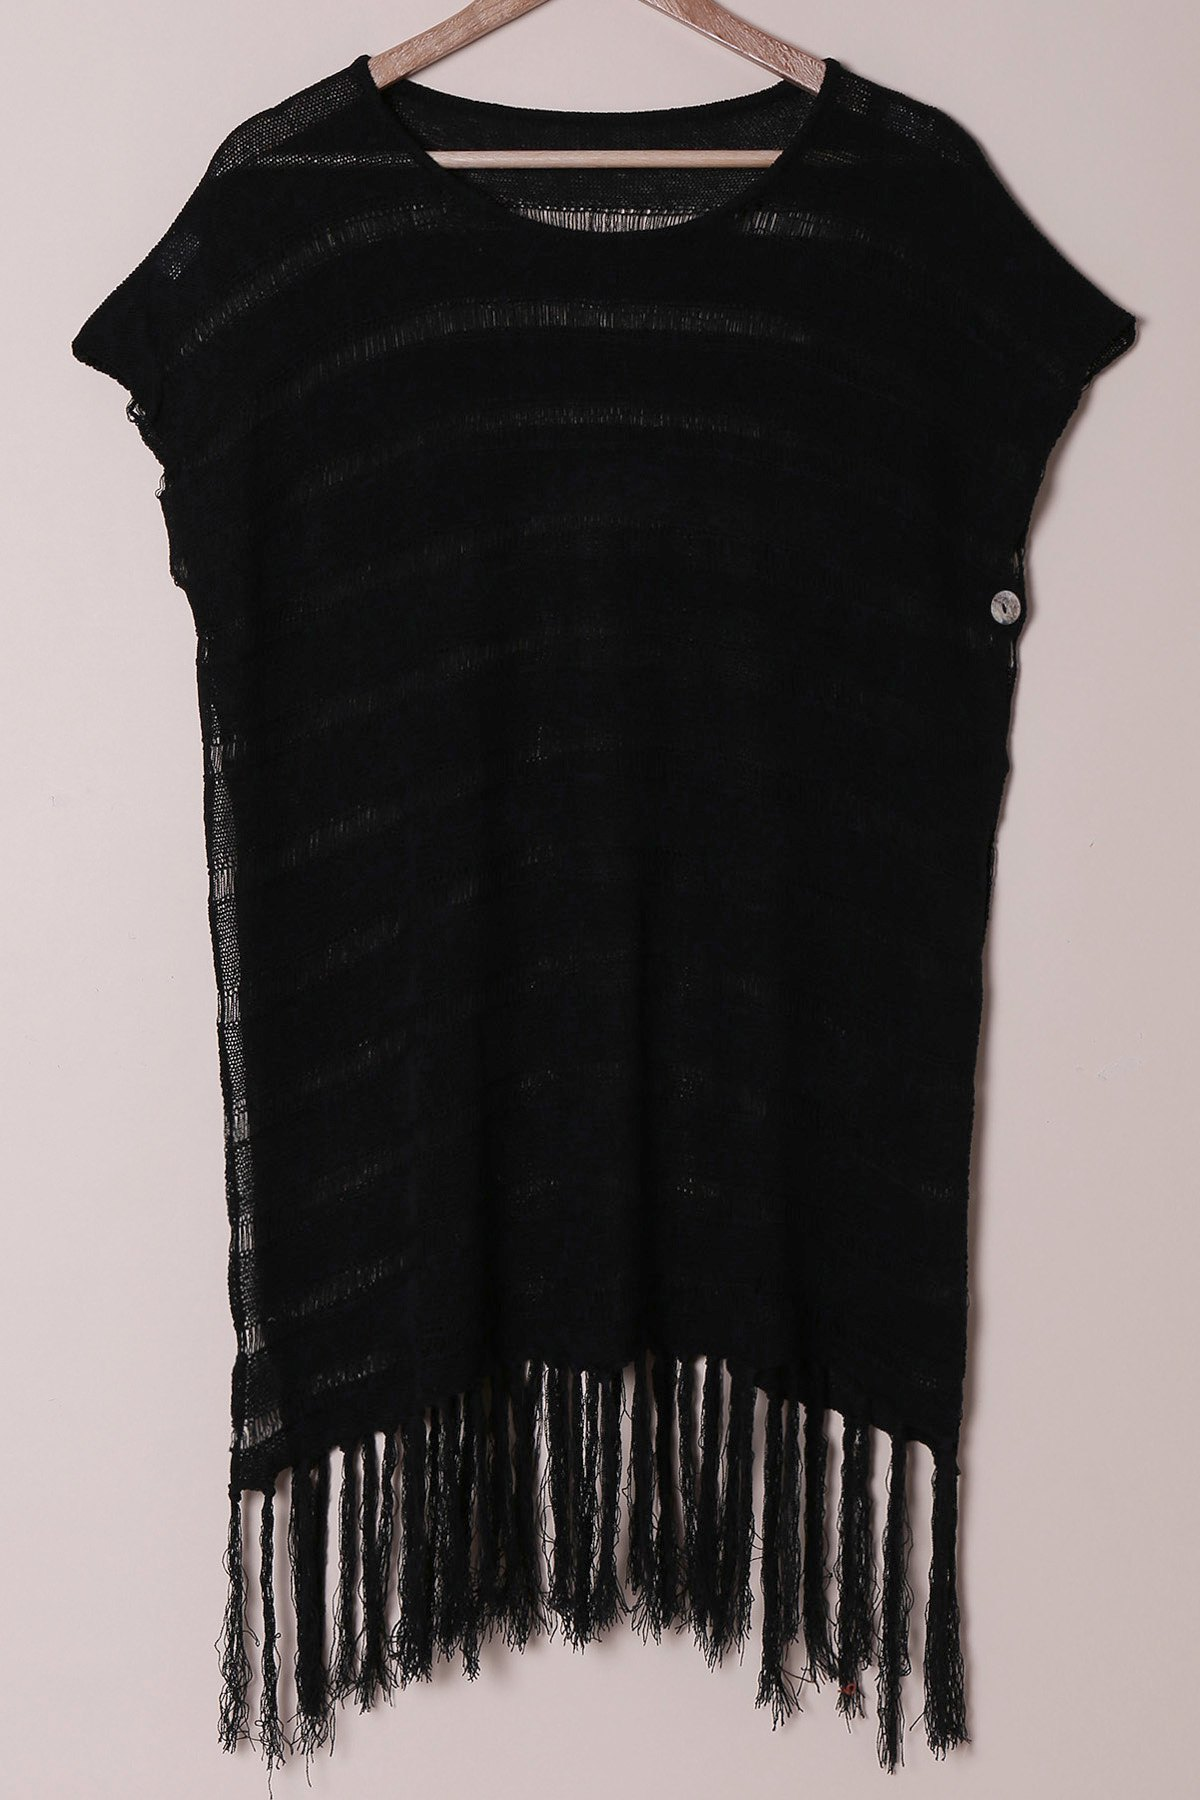 Sexy Scoop Neck Short Sleeve See-Through Fringed Women's Cover-Up - BLACK ONE SIZE(FIT SIZE XS TO M)